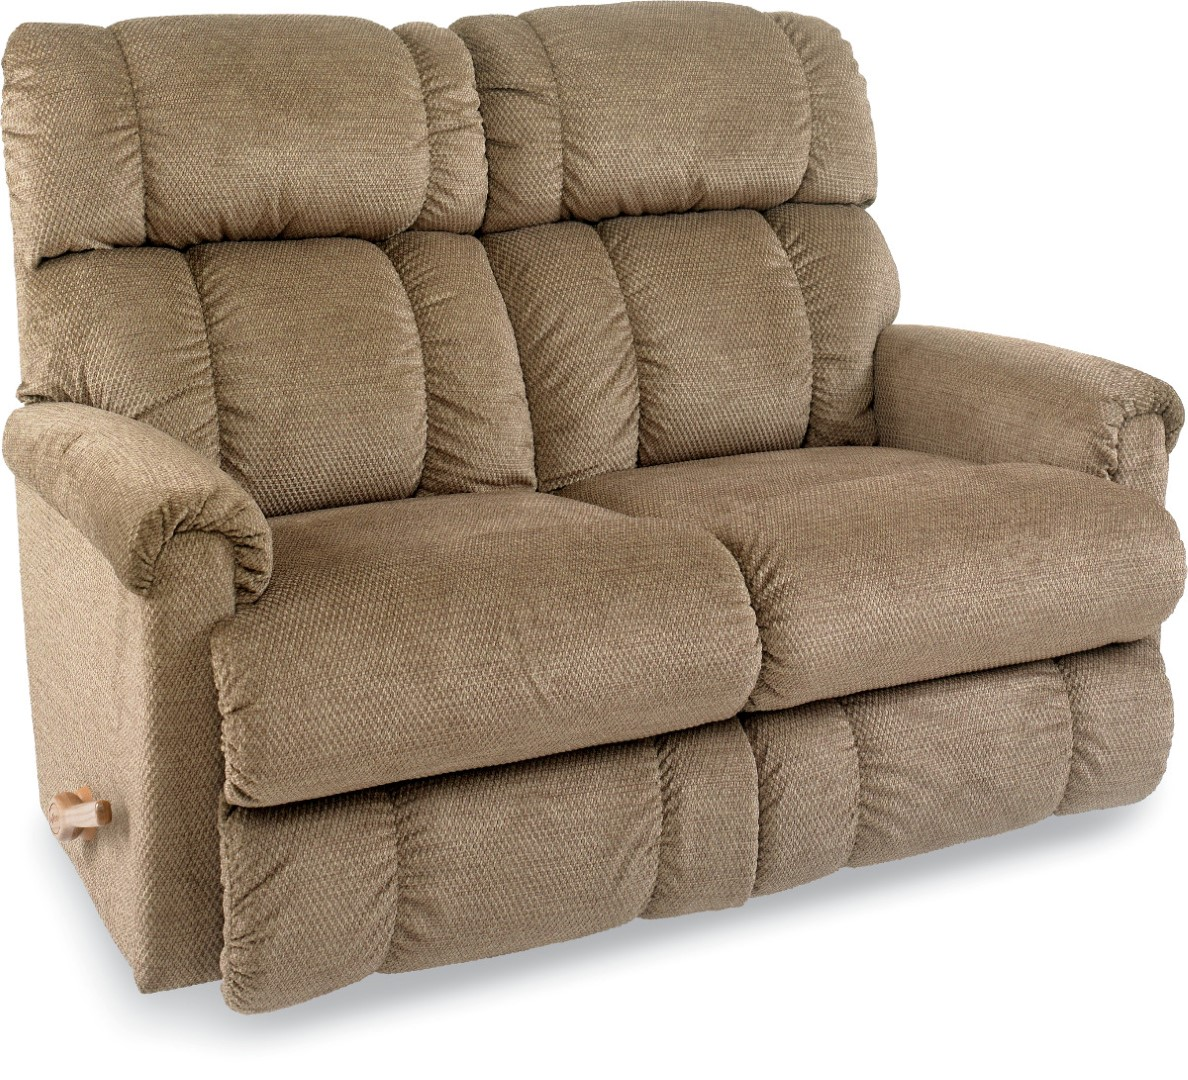 La Z Boy Pinnacle Reclining Sofa Town amp Country Furniture : 30 512 ls Large from towncofurniture.com size 1188 x 1080 jpeg 431kB